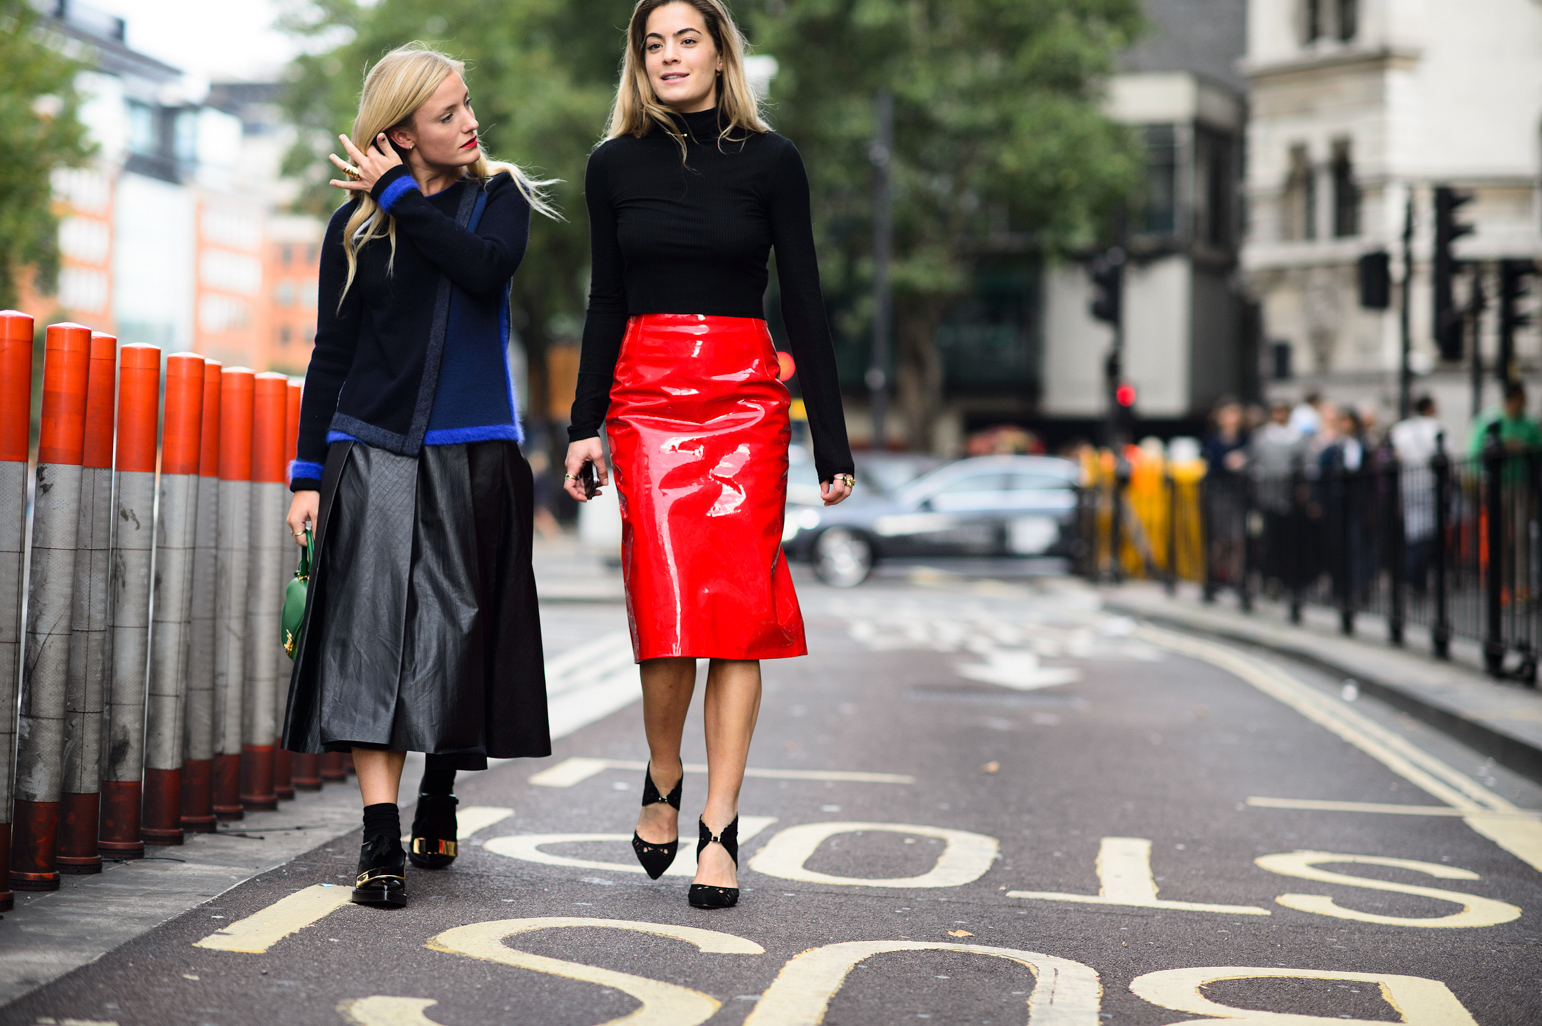 london-spring-2015-street-style-day-2-3-W-MAG 6